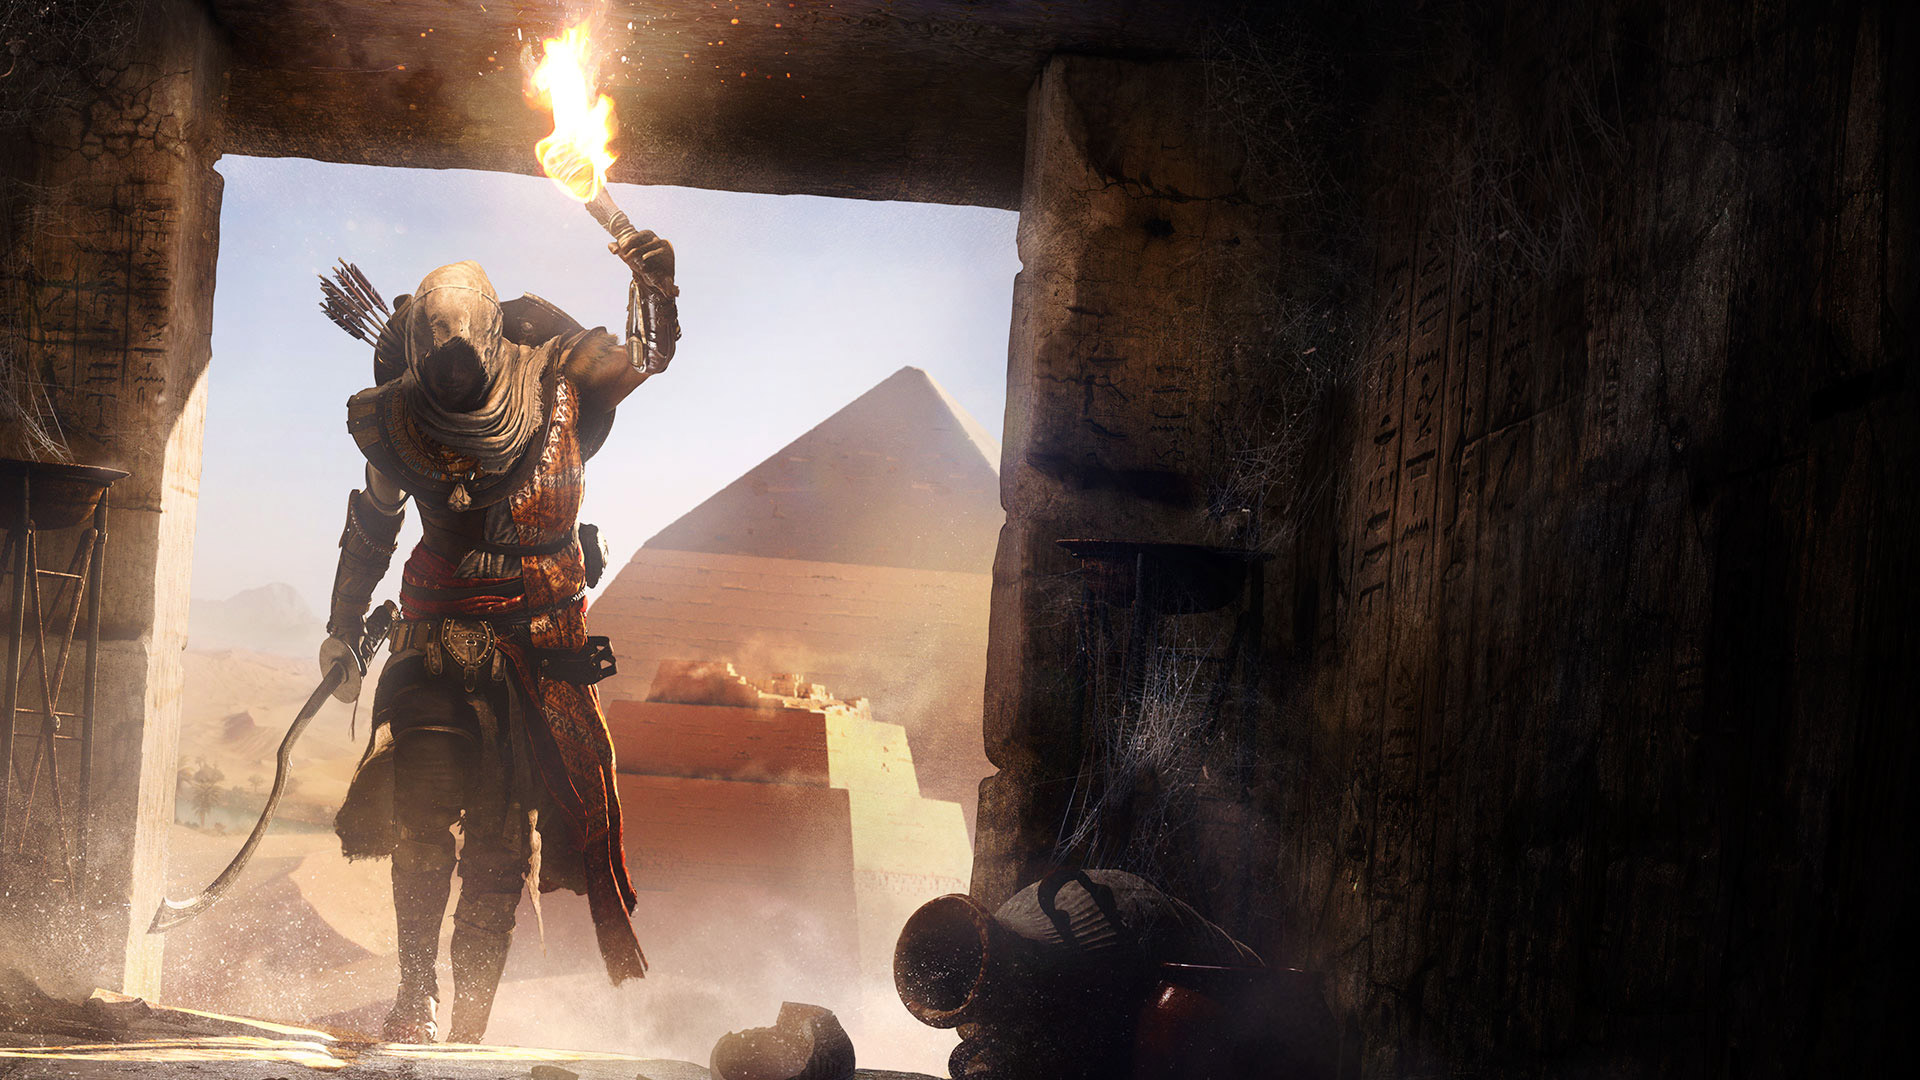 Free Assassin's Creed Origins Wallpaper in 1920x1080